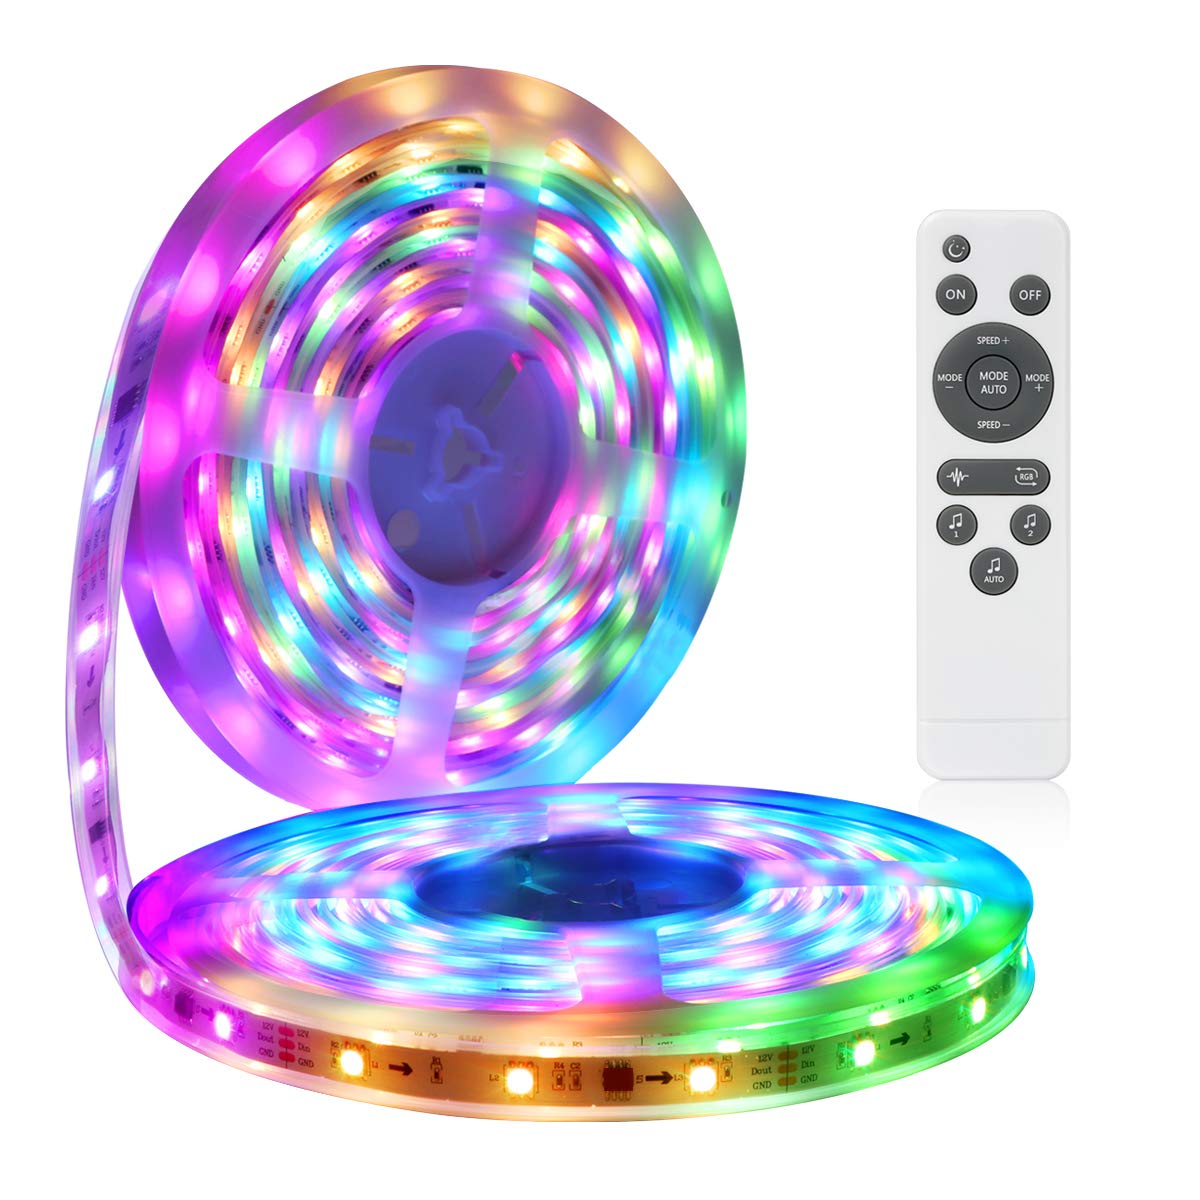 LED Strip Lights More Than 80 Kinds of Modes Music Activated Rainbow Lights 32.8ft/10m IP65 Waterproof LED Light Strip 5050 RGB LED Strip with RF Controller by DotStone by DotStone